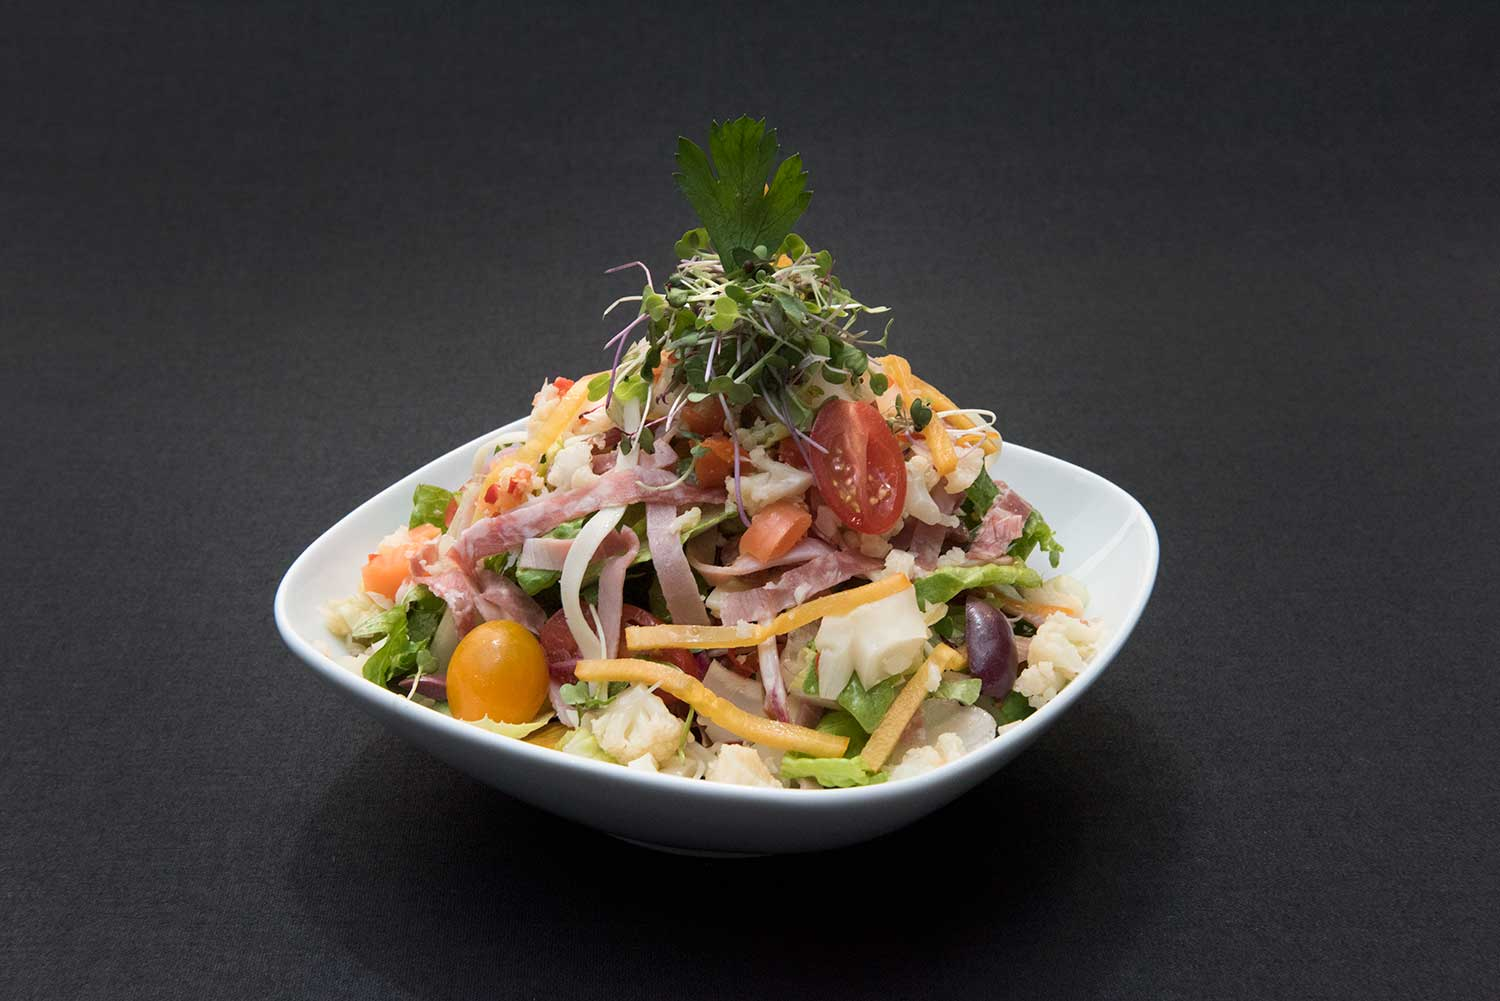 Fresh Garden Salad from Culture Kitchen at MoPop